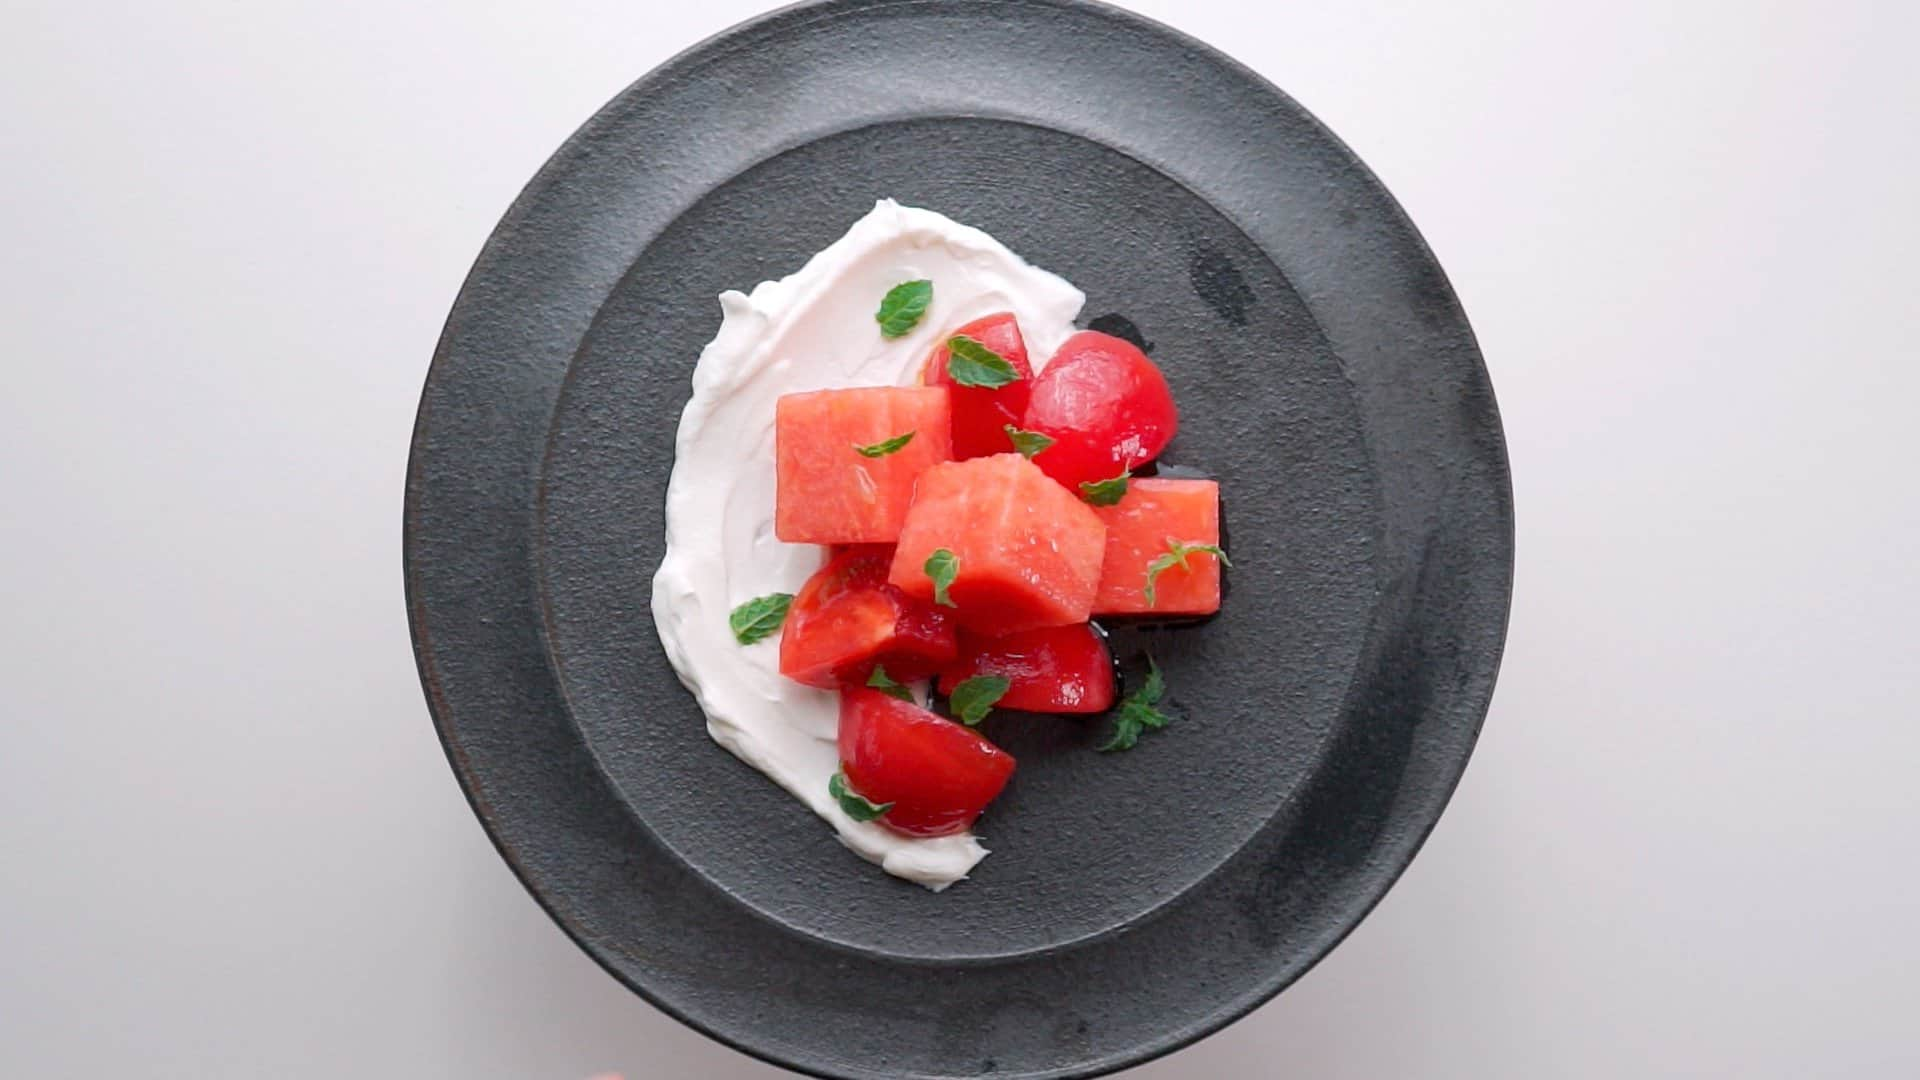 Mint, watermelon and tomato salad on a bed of labneh.